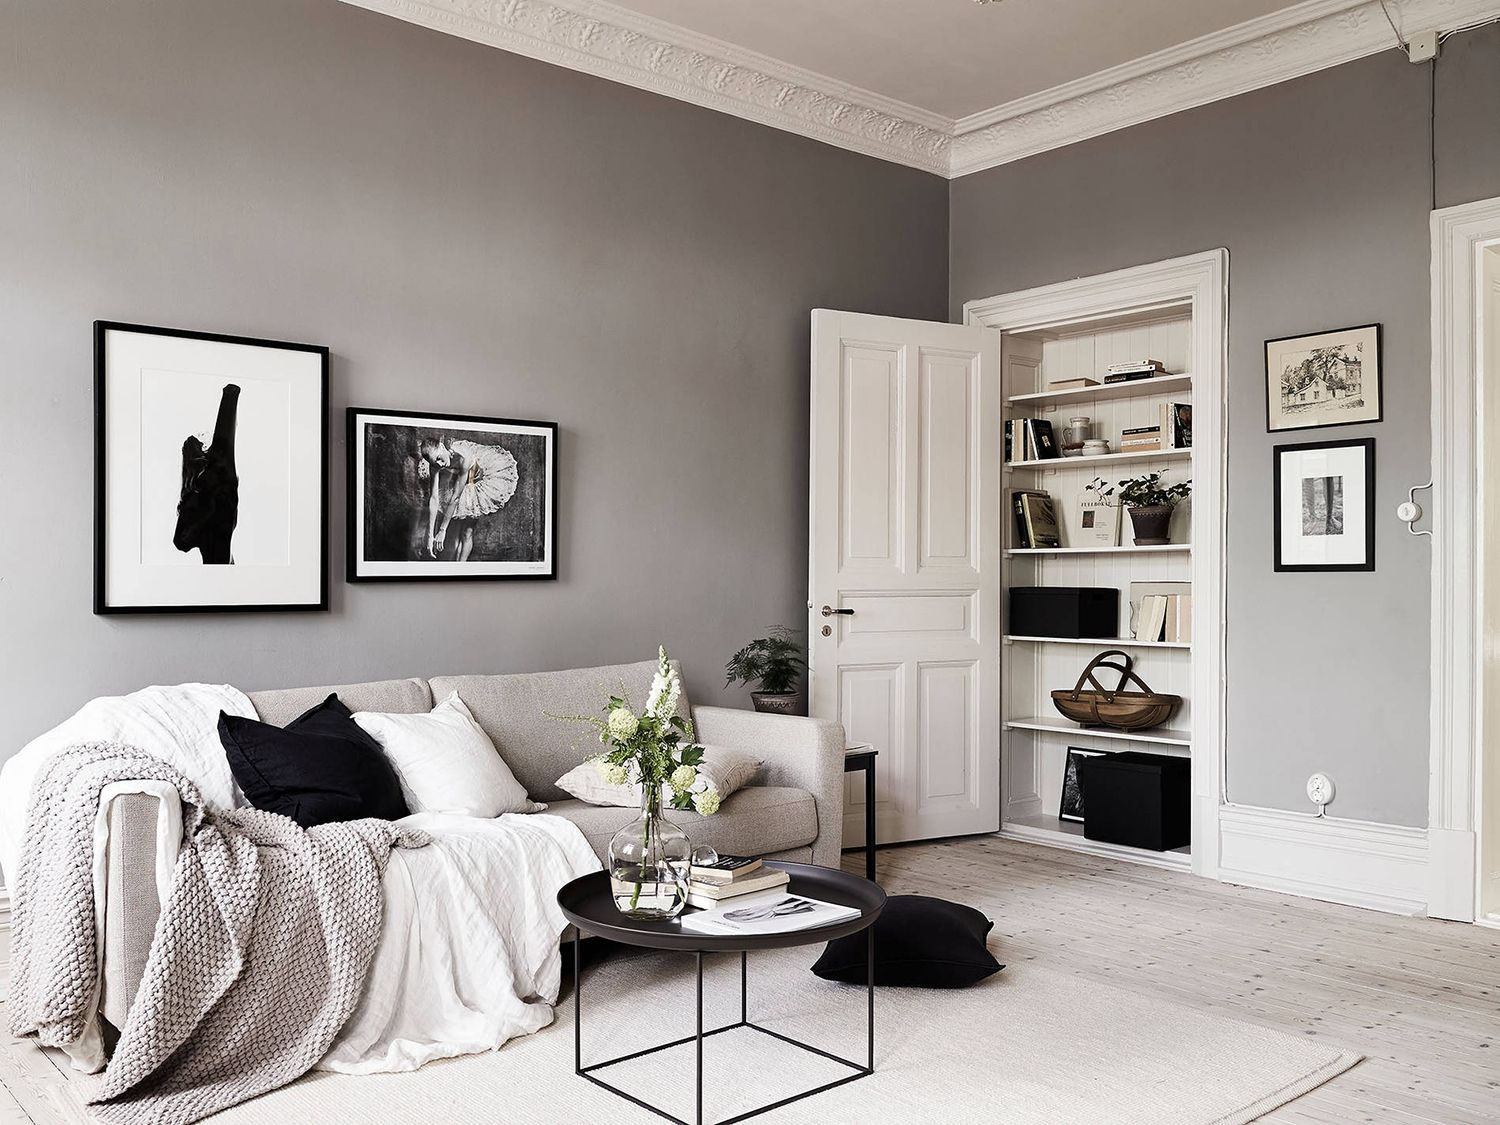 A Swedish Home with Neutral Colors, gray, white and black ...